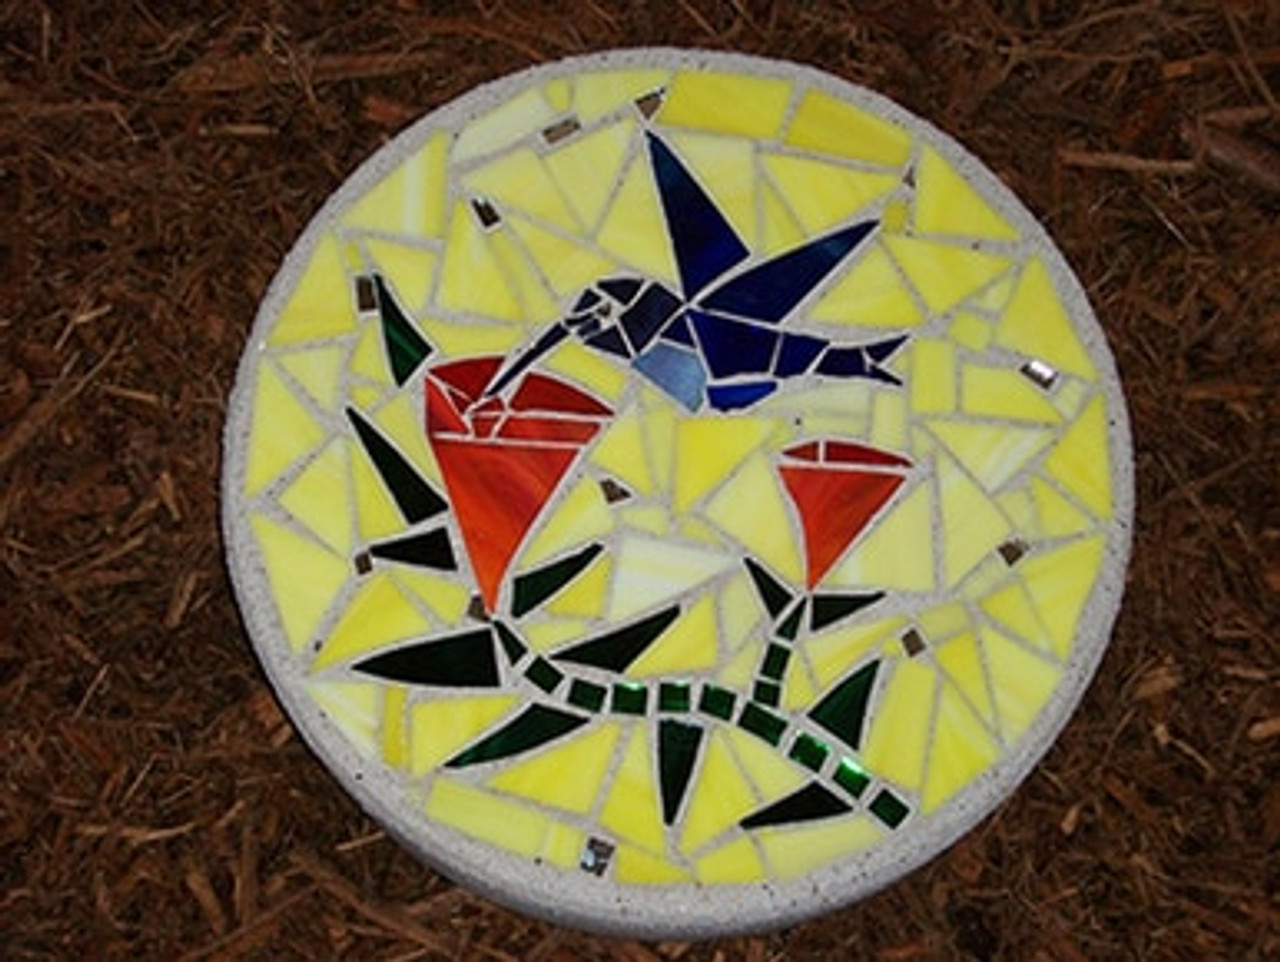 Hummingbird Stained Glass Stepping Stone by Zoozii's Q.T.Z. on WisconsinMade Artisan Collective